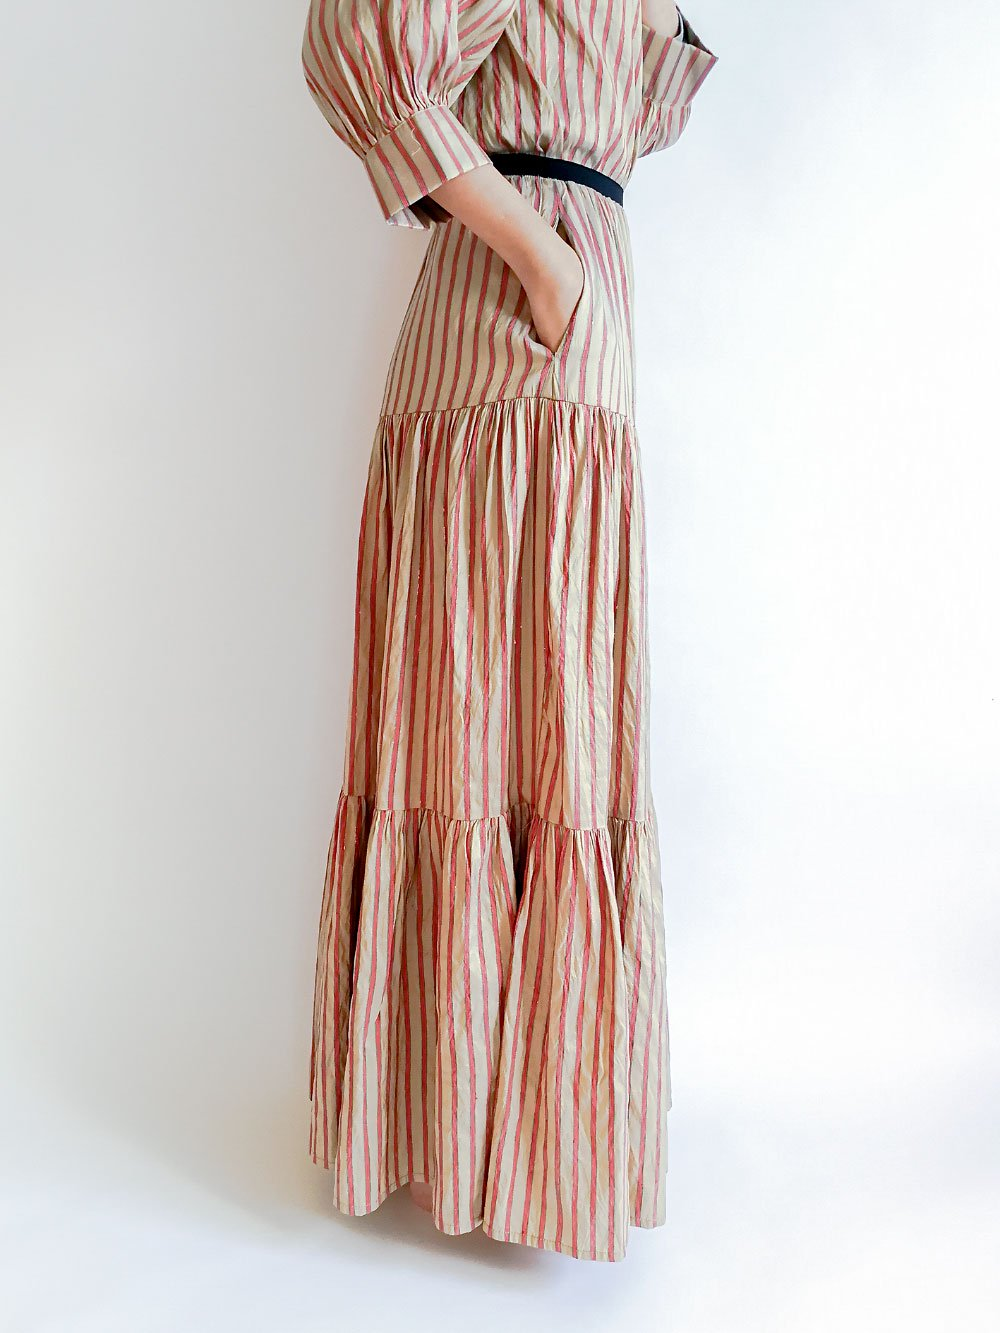 Tiered Skirt / original beige